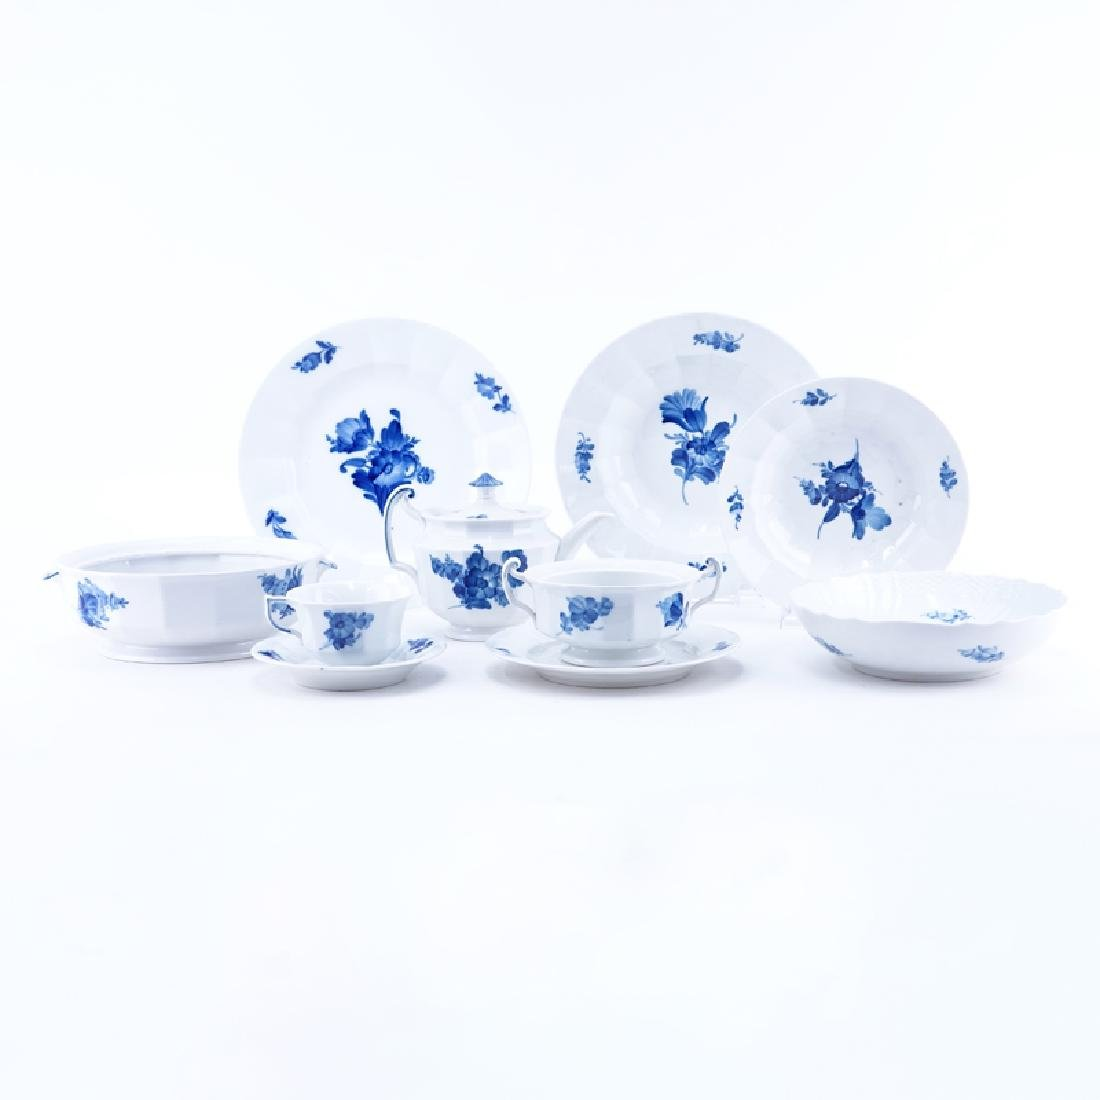 Sixty-Four (64) Pieces Royal Copenhagen Blue Flowers